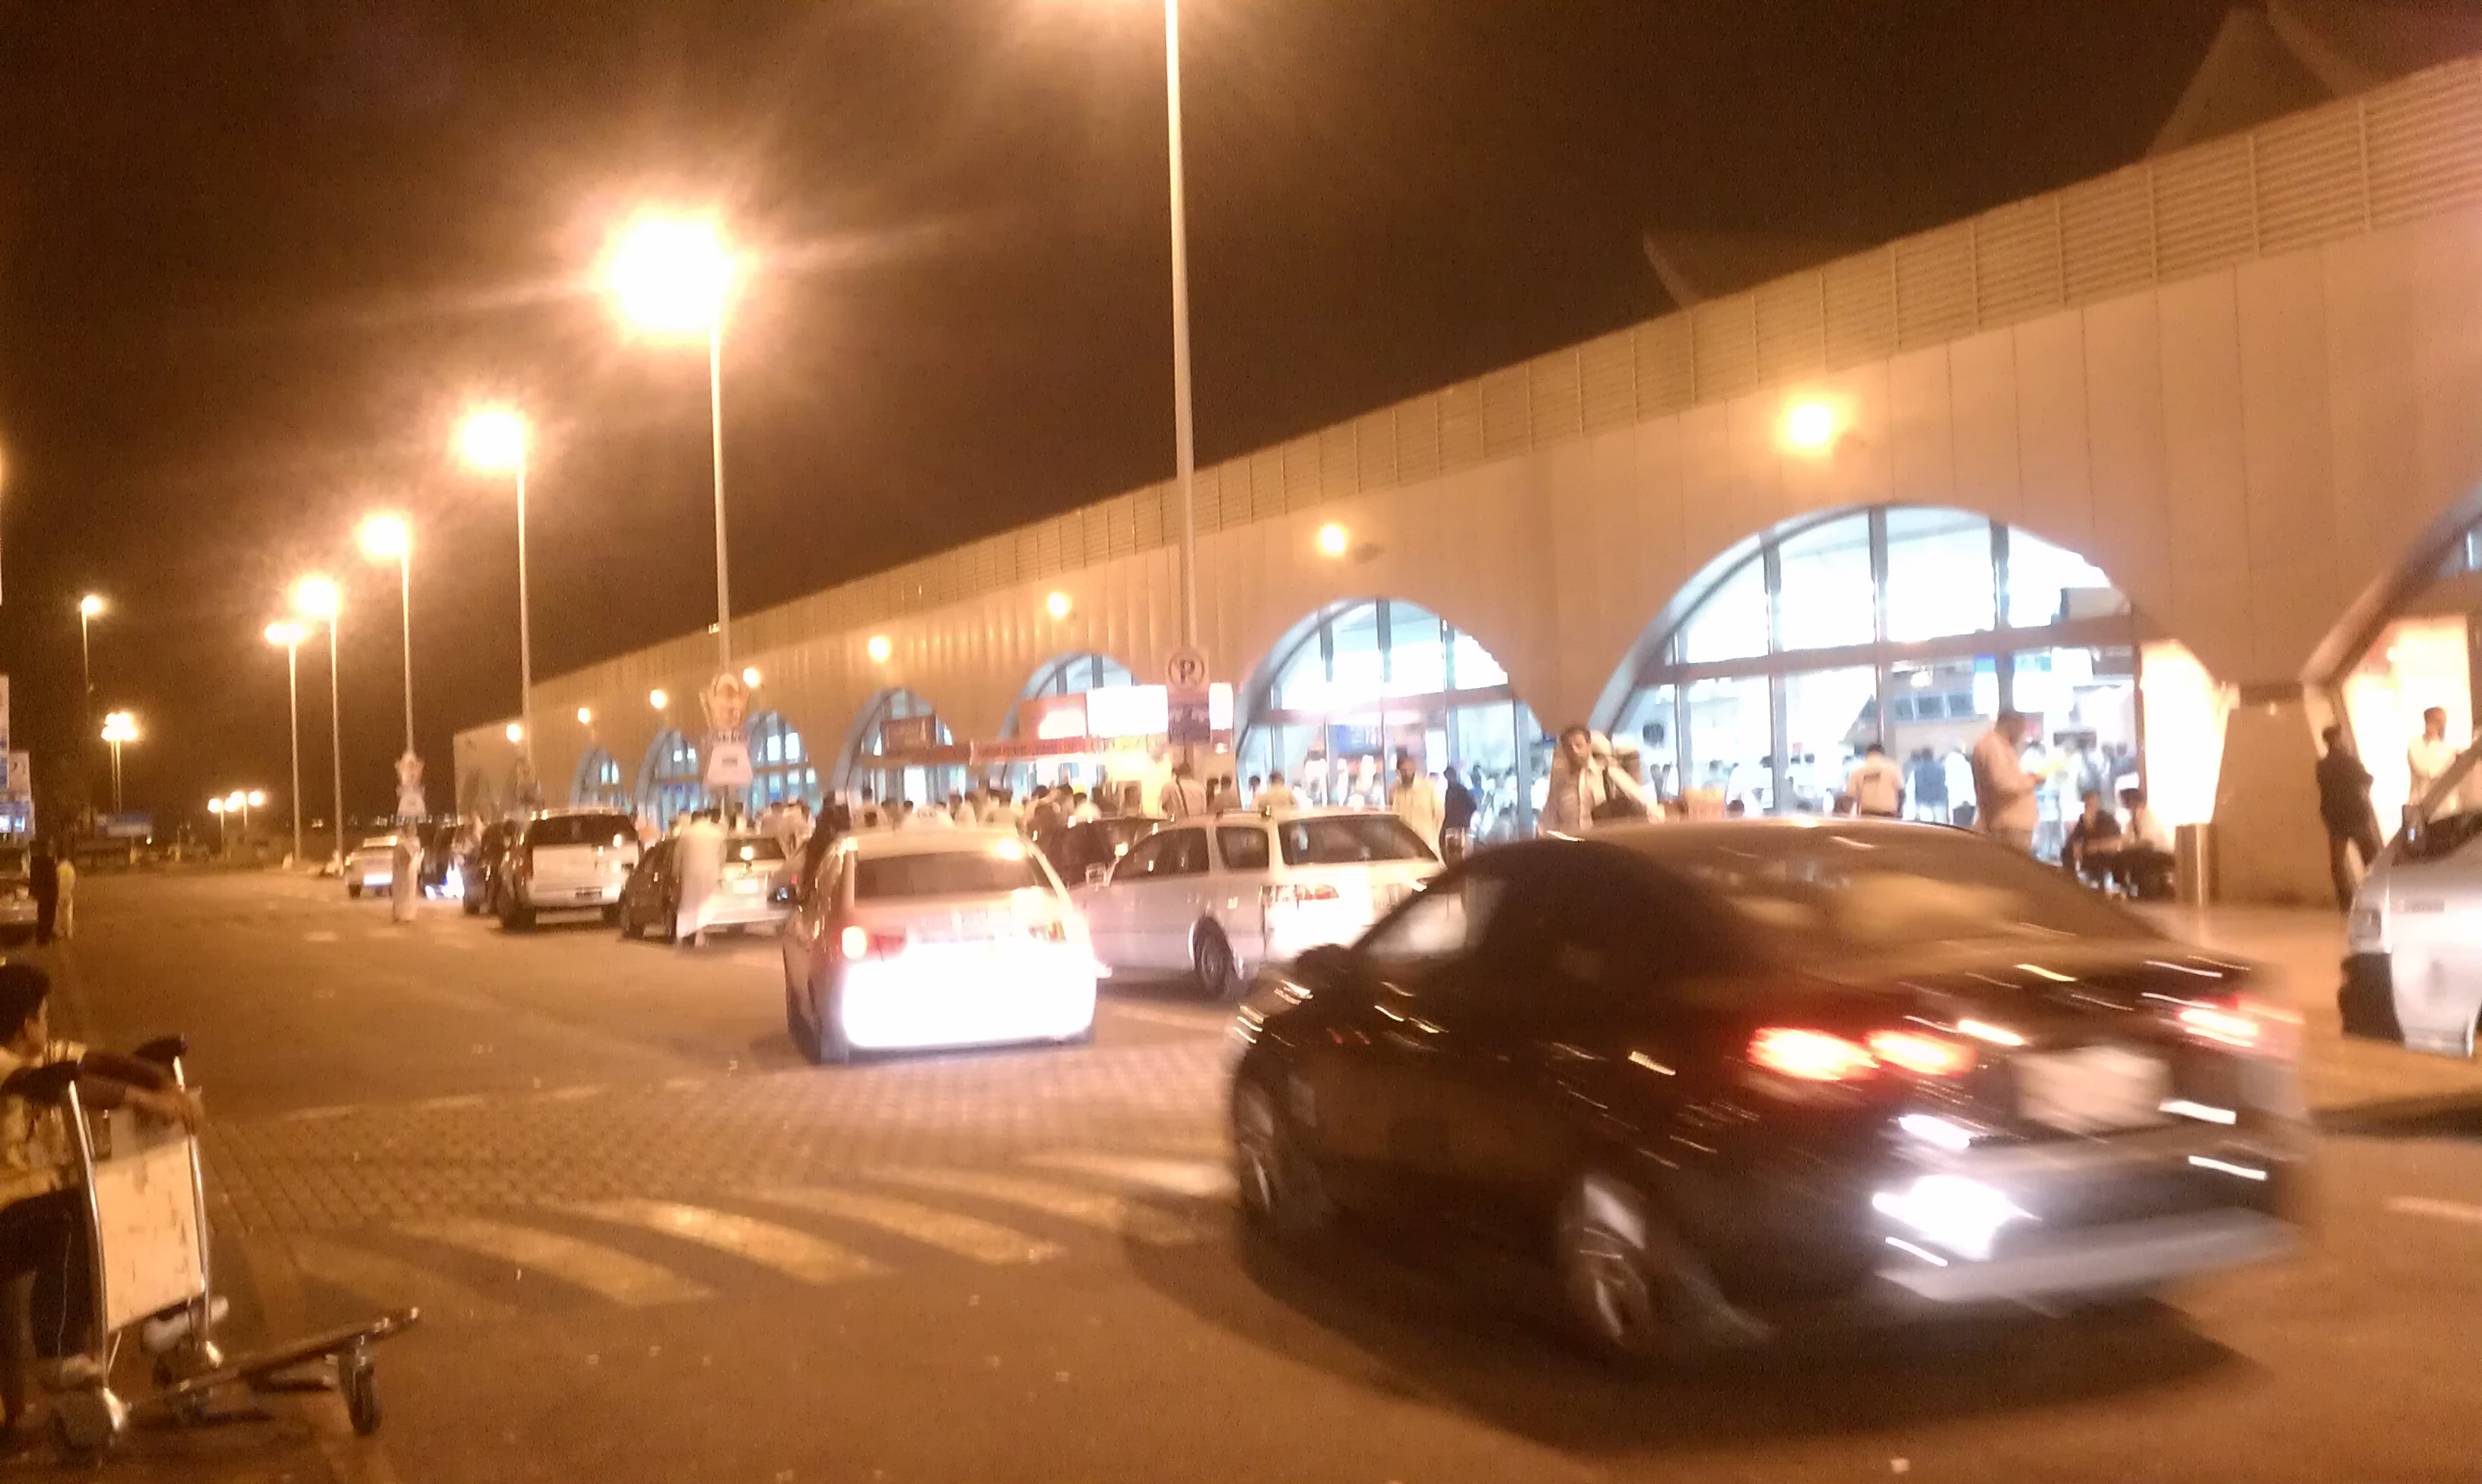 File:Jeddah airport night.jpg - Wikimedia Commons